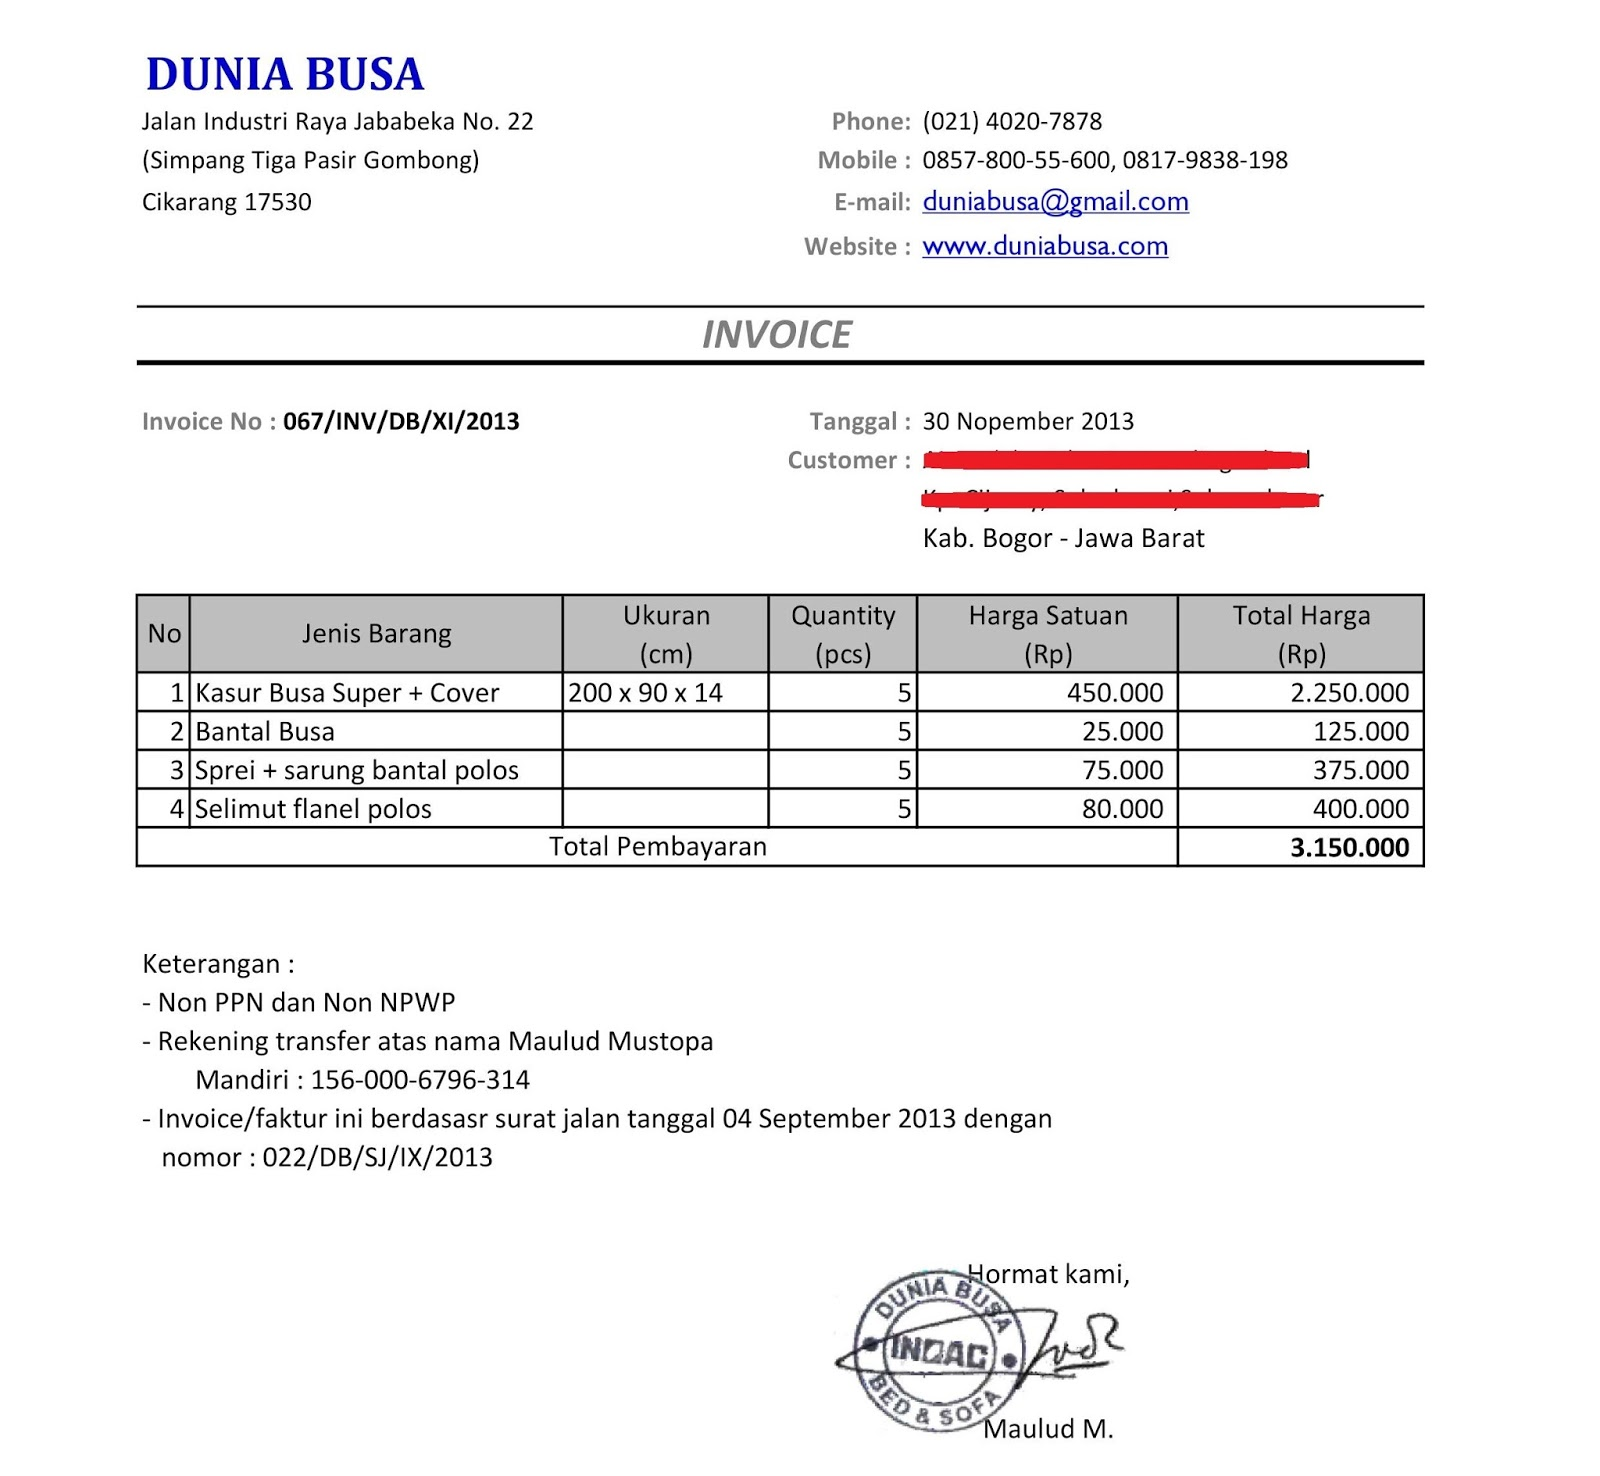 Theologygeekblogus  Unusual Free Invoice Online  Create Invoice Online  Invoice Template  With Luxury Contoh Format Invoice Atau Surat Tagihan  Brankas Arsip  Free Invoice Online With Agreeable Towing Service Invoice Template Also Invoice Doc In Addition Define Invoices And Company Invoice Template As Well As Invoice Zoho Additionally Edmunds Invoice From Sklepco With Theologygeekblogus  Luxury Free Invoice Online  Create Invoice Online  Invoice Template  With Agreeable Contoh Format Invoice Atau Surat Tagihan  Brankas Arsip  Free Invoice Online And Unusual Towing Service Invoice Template Also Invoice Doc In Addition Define Invoices From Sklepco